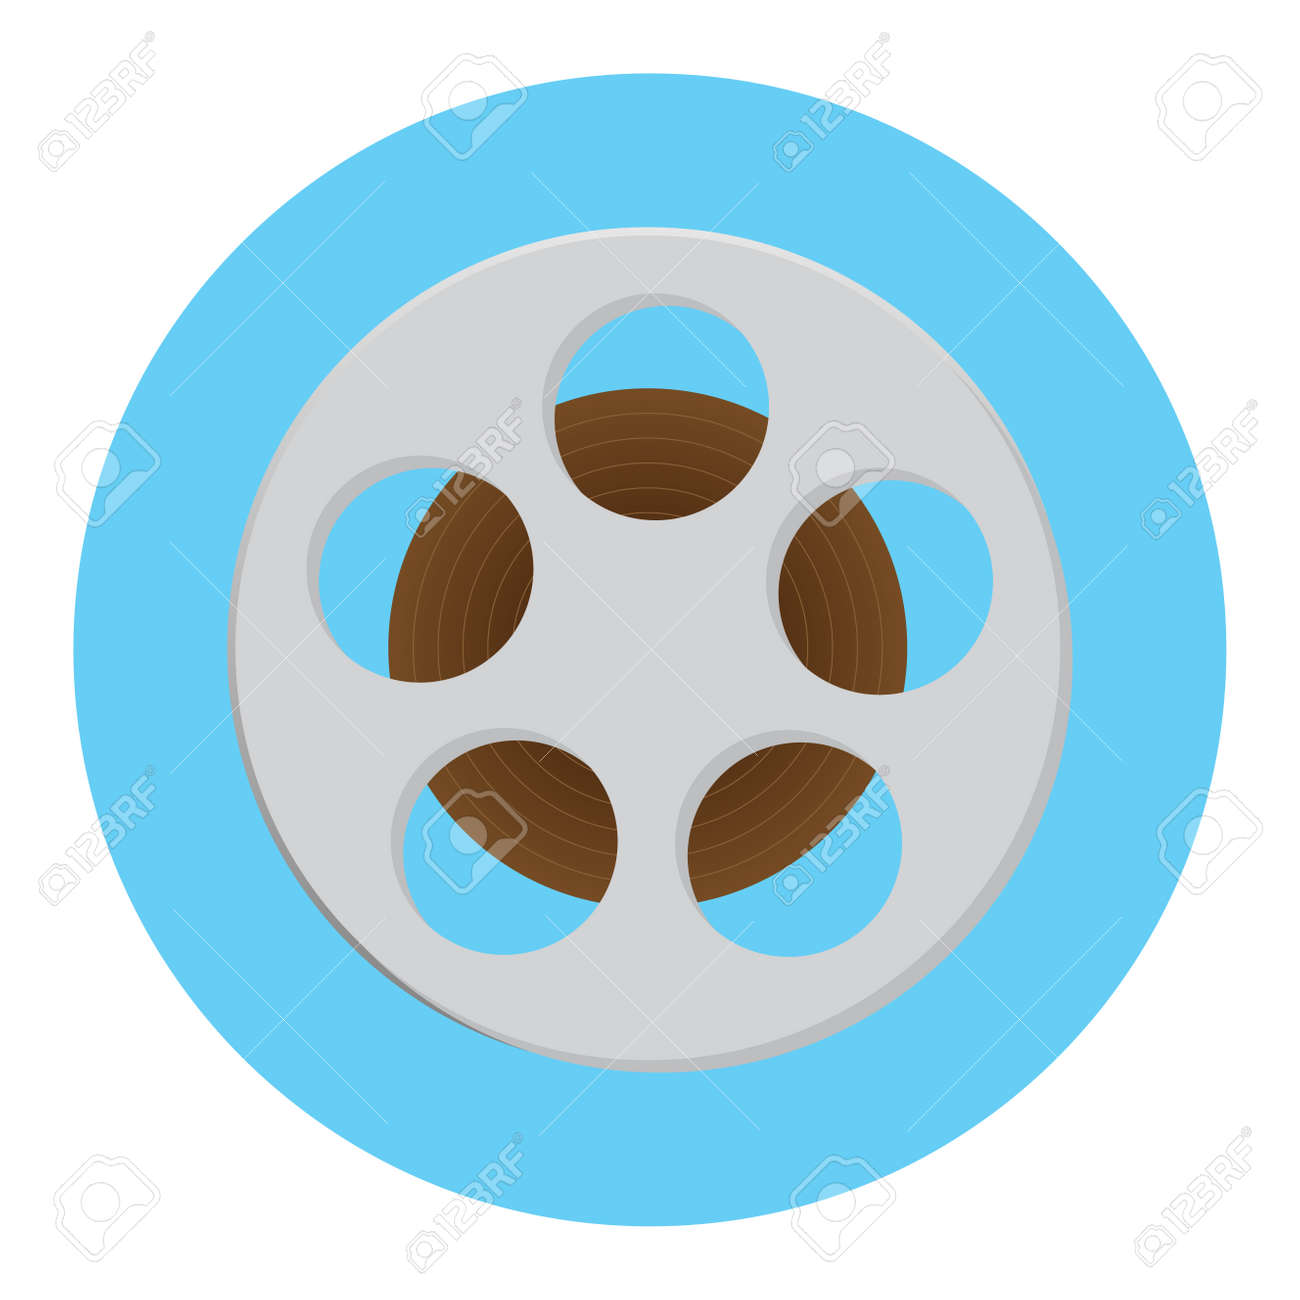 reel of film icon film strip and movie reel film roll and film rh 123rf com film camera icon vector film icon vector free download